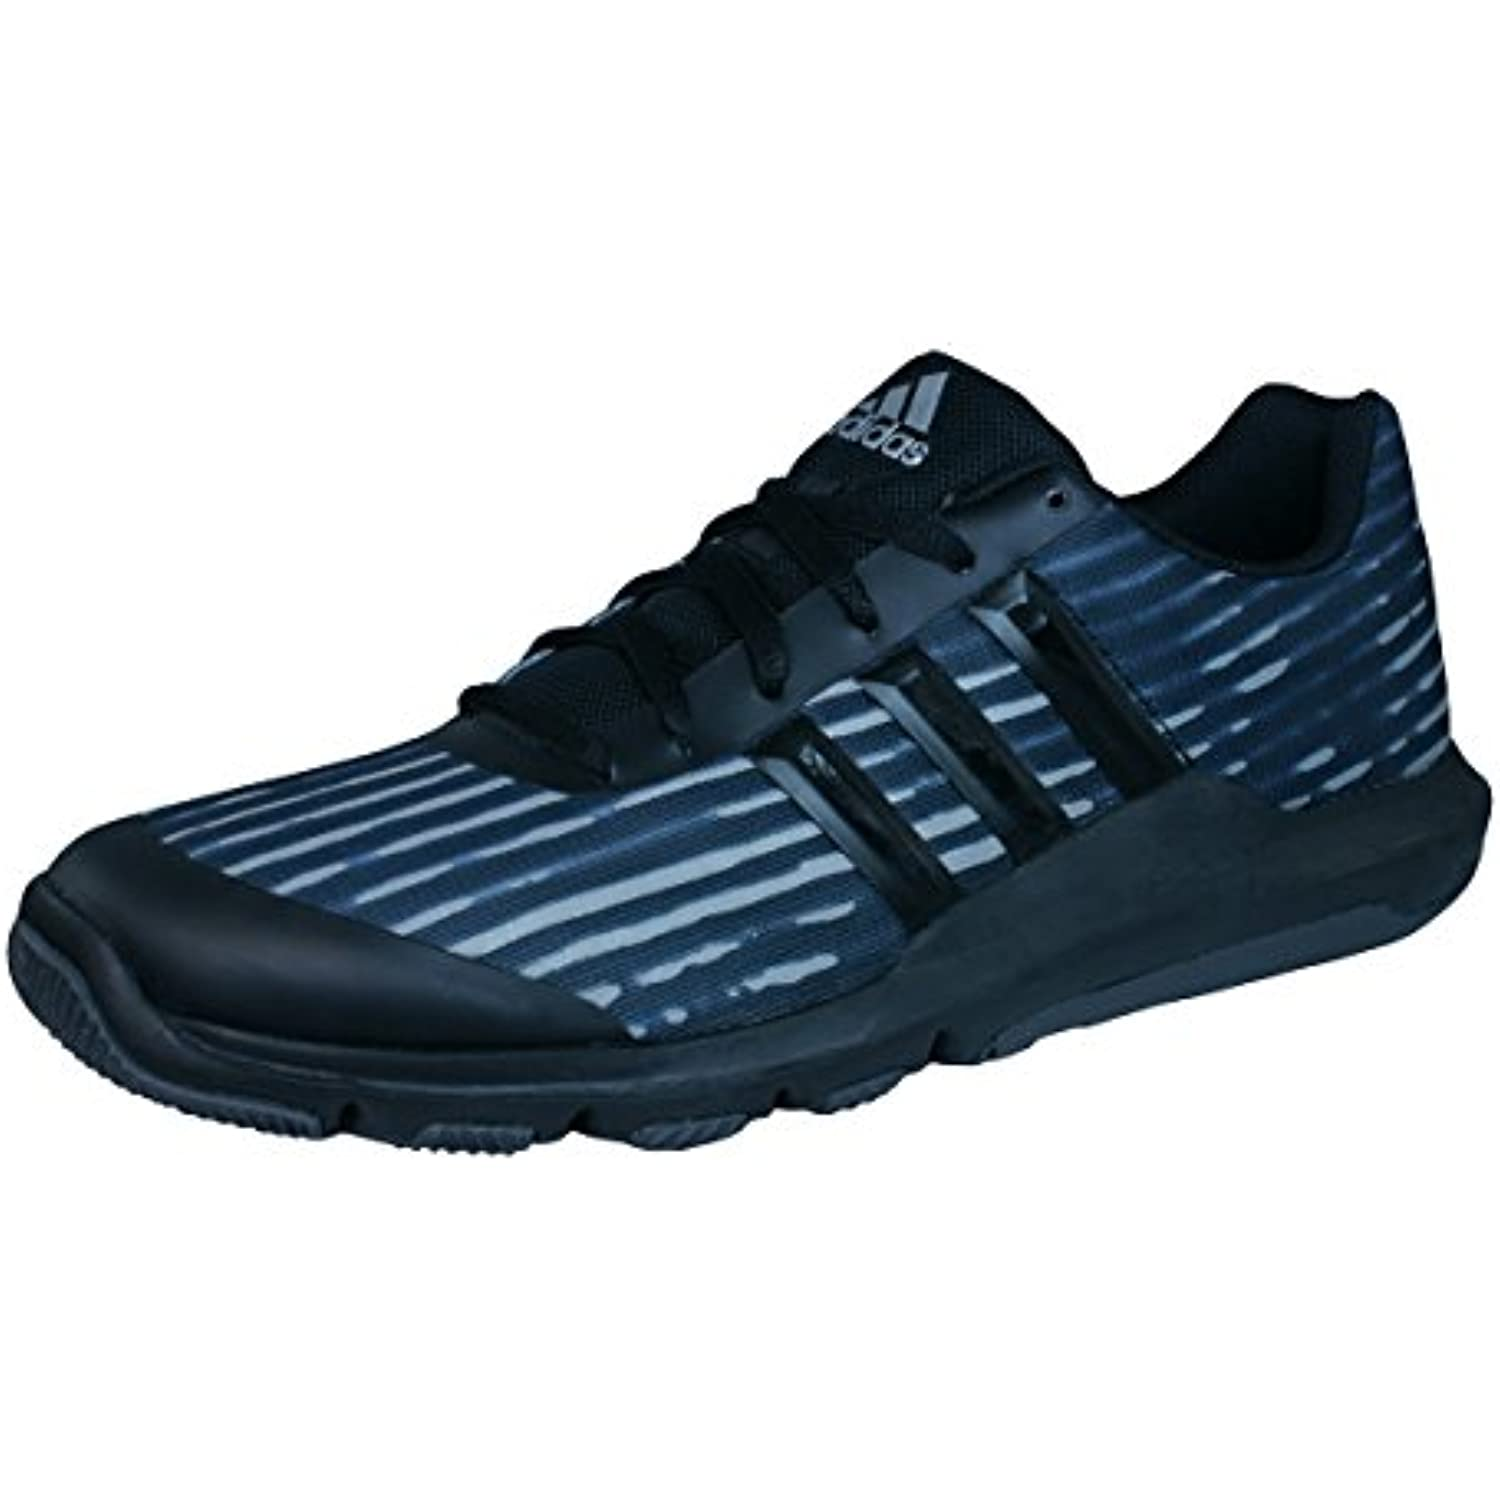 adidas PerforFemmece Adipure Primo Chaussures AF6161, Chaussures Primo Fitness - B01AHPGAUG - bce73c